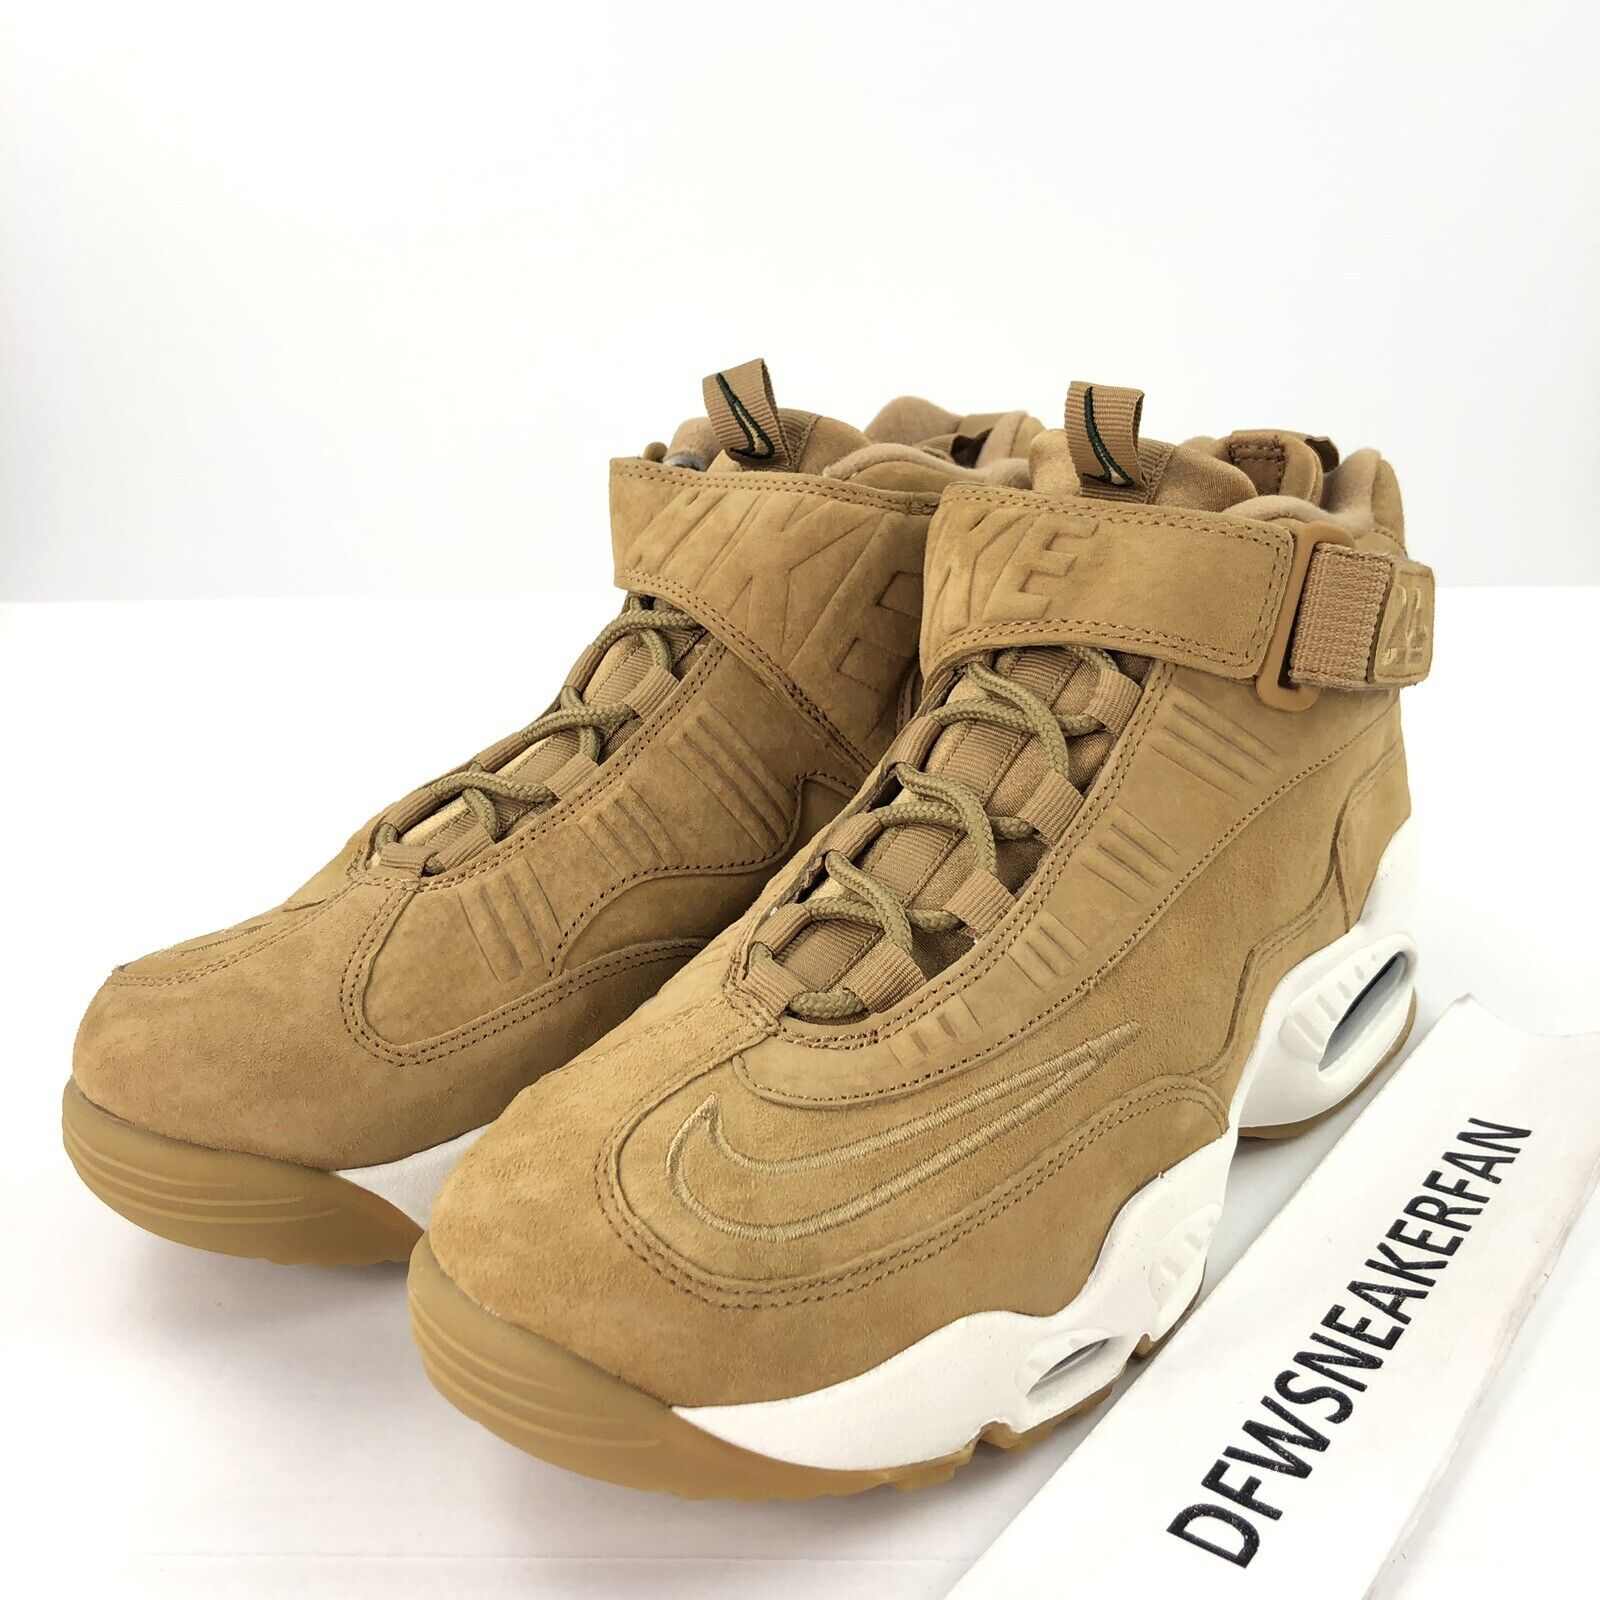 competitive price 4d8c7 feead Nike Air Griffey Max 1 Men s 9.5 Wheat Tan Flax Sail shoes 354912-200 Gum  shoes njutxk7021-Men s Athletic Shoes